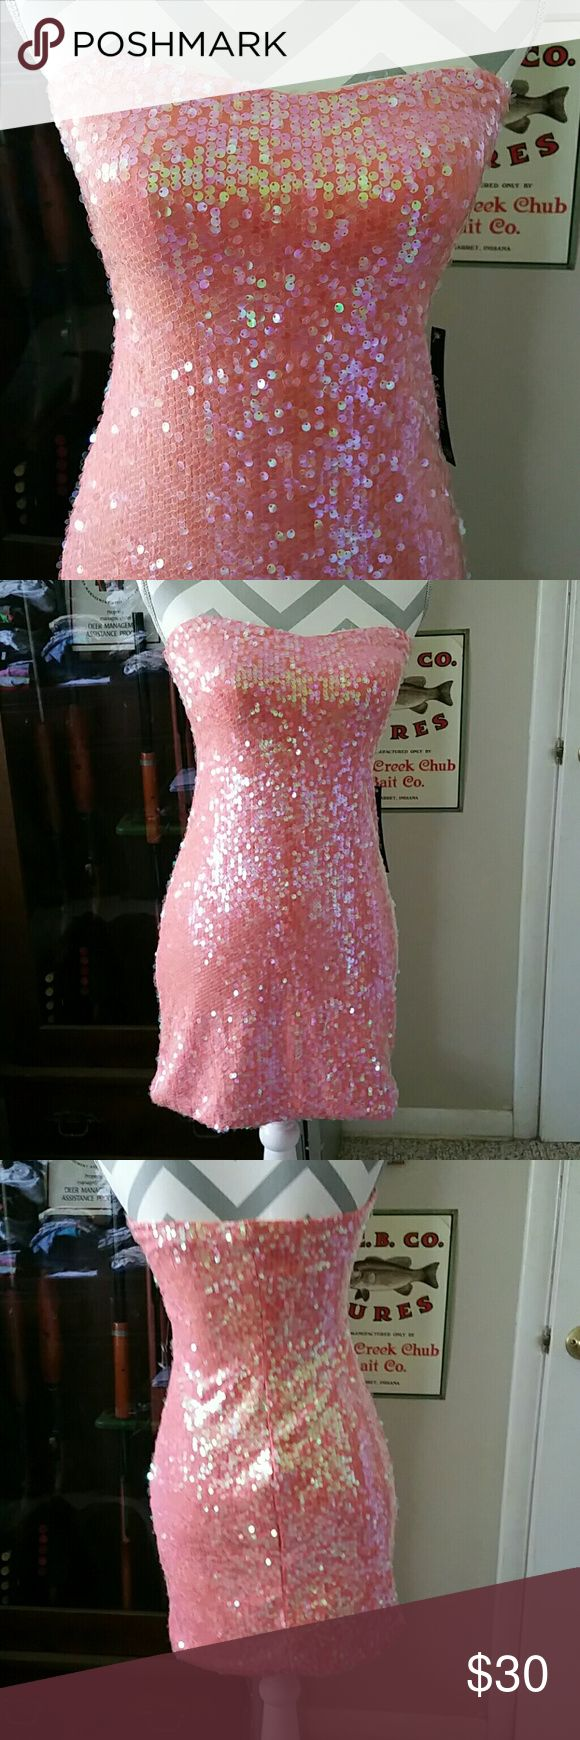 MEOW! Coral Strapless Dress w/ Iridescent Sequins This is such a gorgeous dress! Great for clubs, girls night out, parties... or just feeling sexy! This is NWT, fully lined, has great elastic for hold around the bust, sweetheart neckline, and my favorite part- covered in iridescent sequins! NWT. As U Wish Dresses Strapless